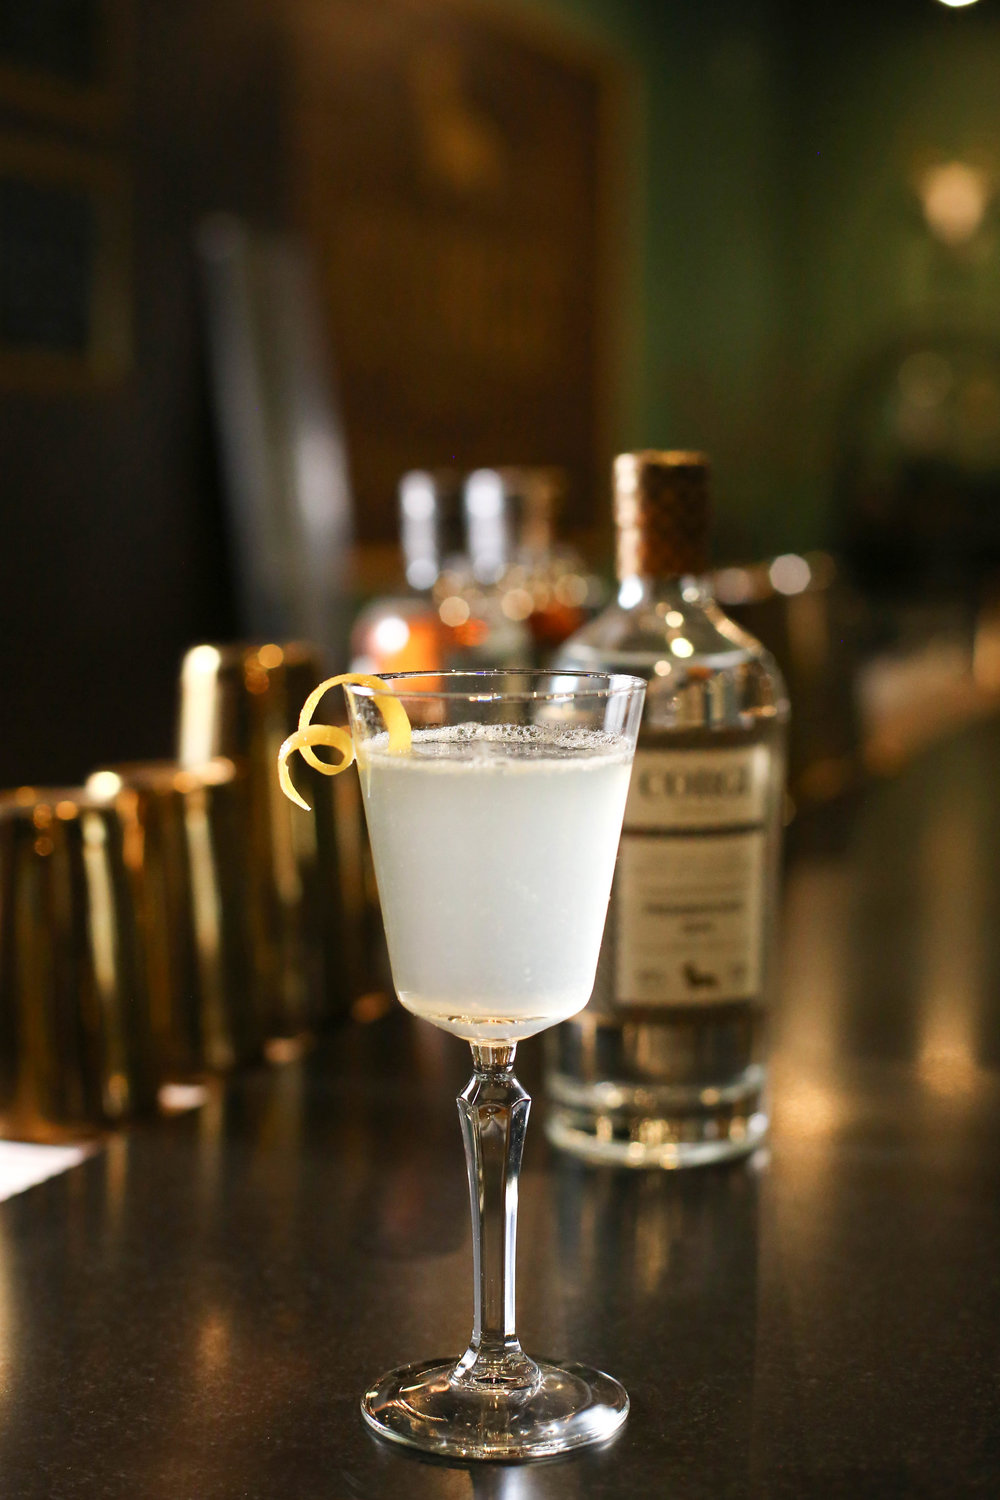 FRENCH 75   1oz Corgi Spirits Pembroke Gin  0.5 oz fresh lemon juice  0.5 oz simple syrup (1 part sugar : 1 part water)  Sparkling wine  Lemon twist for garnish    Fill a shaker with ice, add gin, lemon juice, syrup and shake vigorously. Strain into a chilled champagne glass and top with sparkling wine. Add lemon twist.